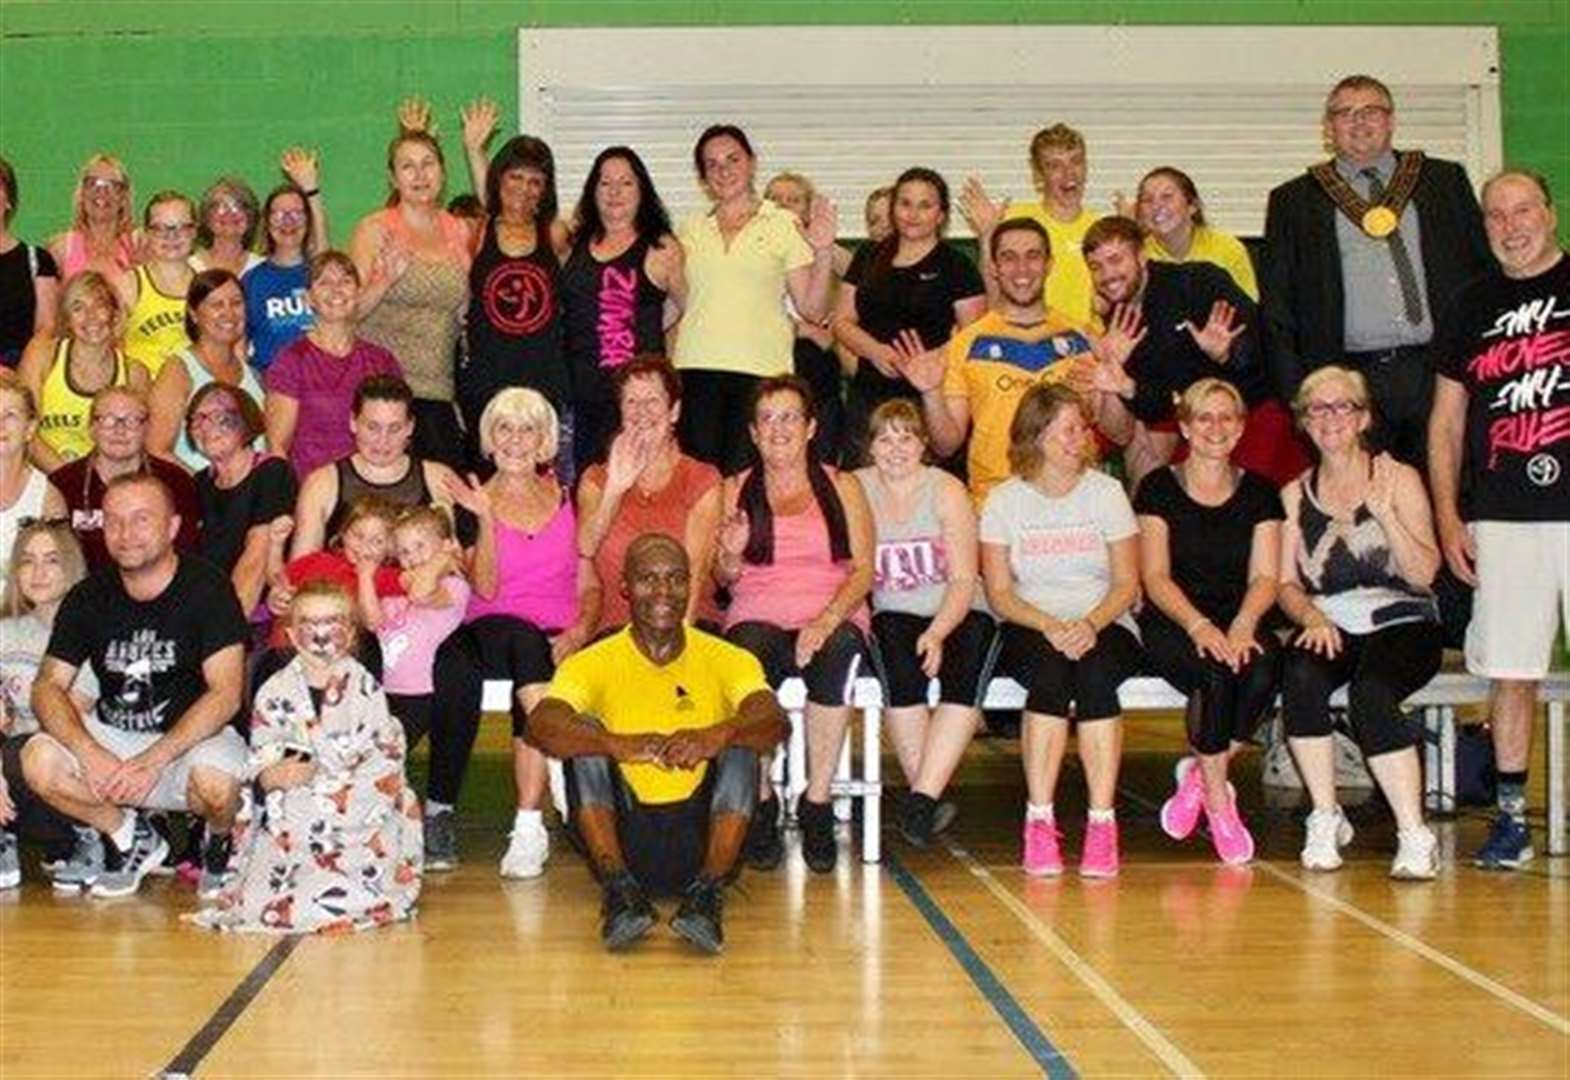 'Record turnout' at Grantham charity zumbathon